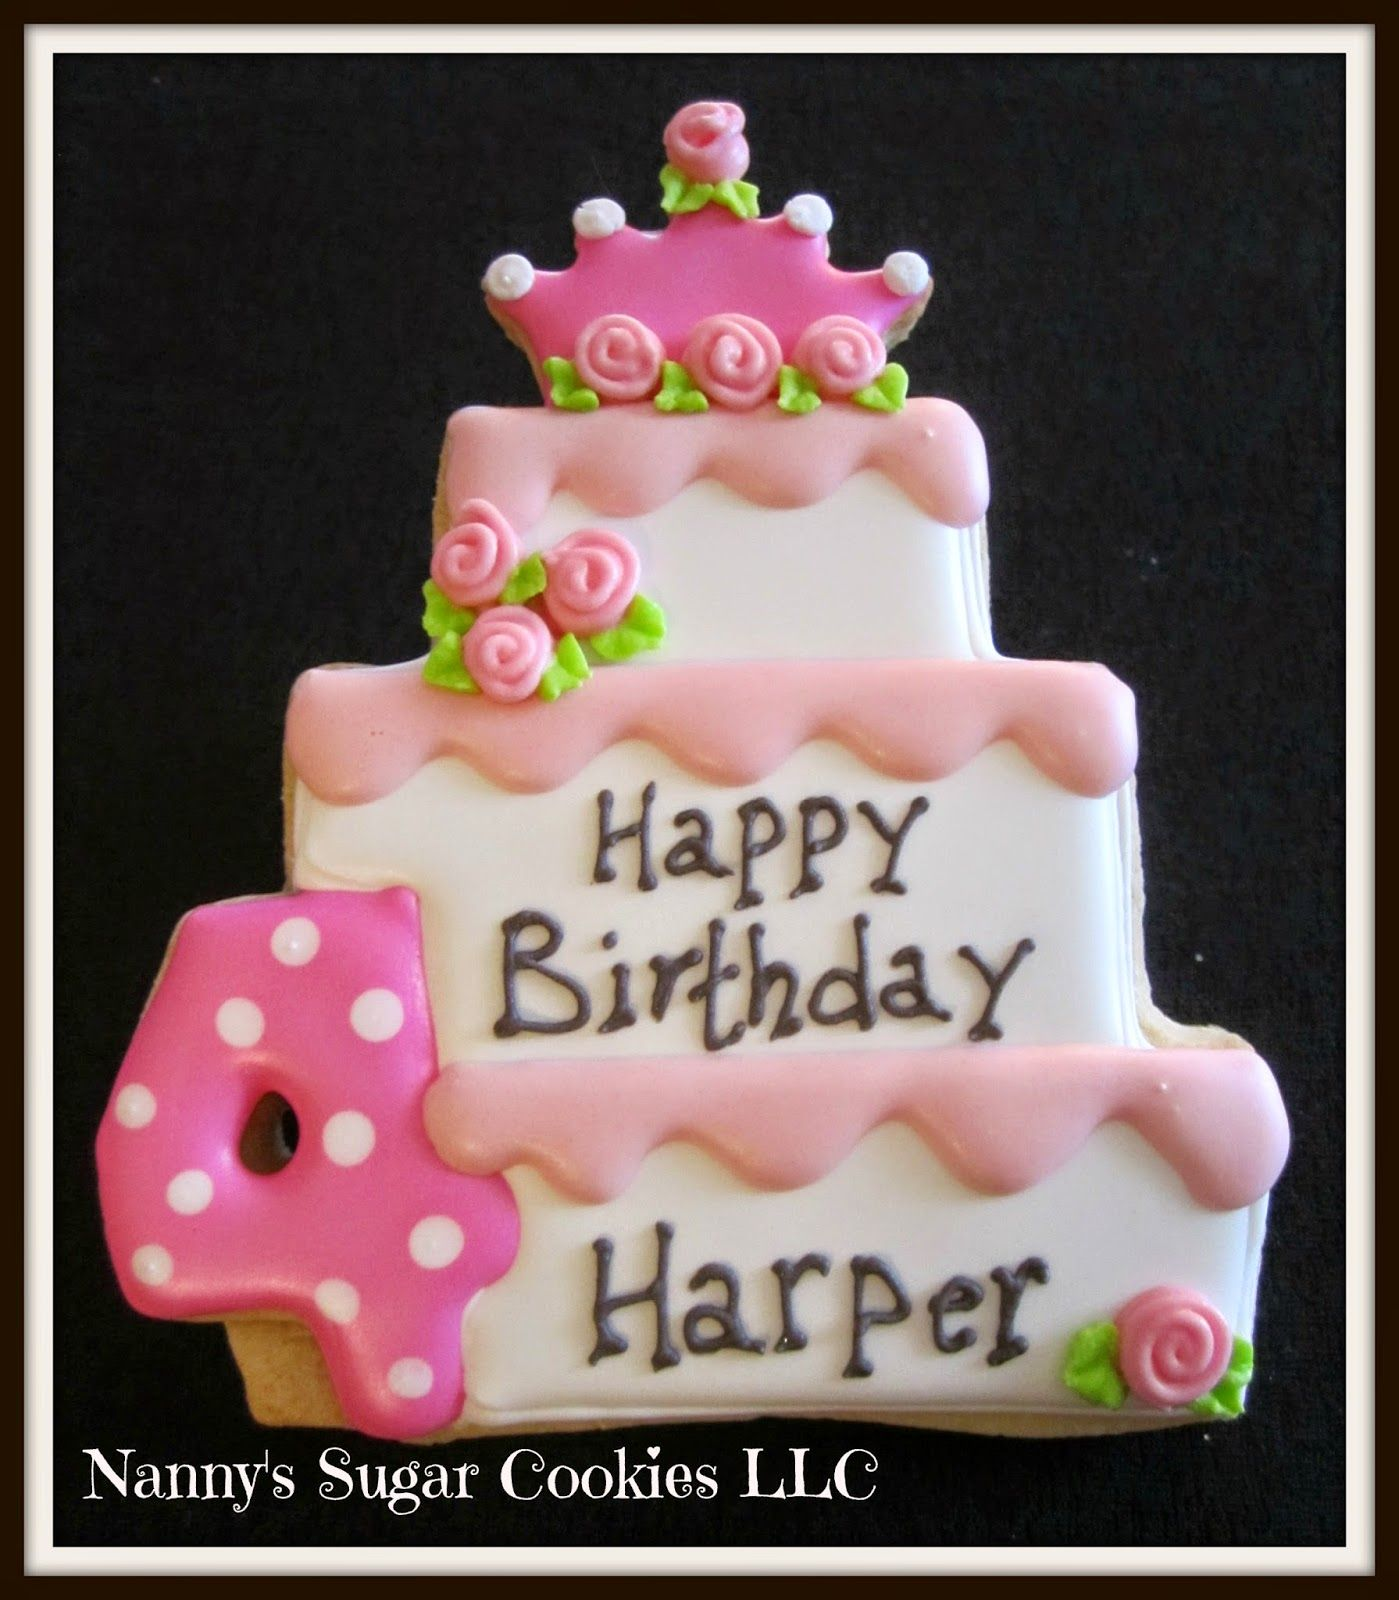 Nannys Sugar Cookies LLC Cookies for a Birthday Princess